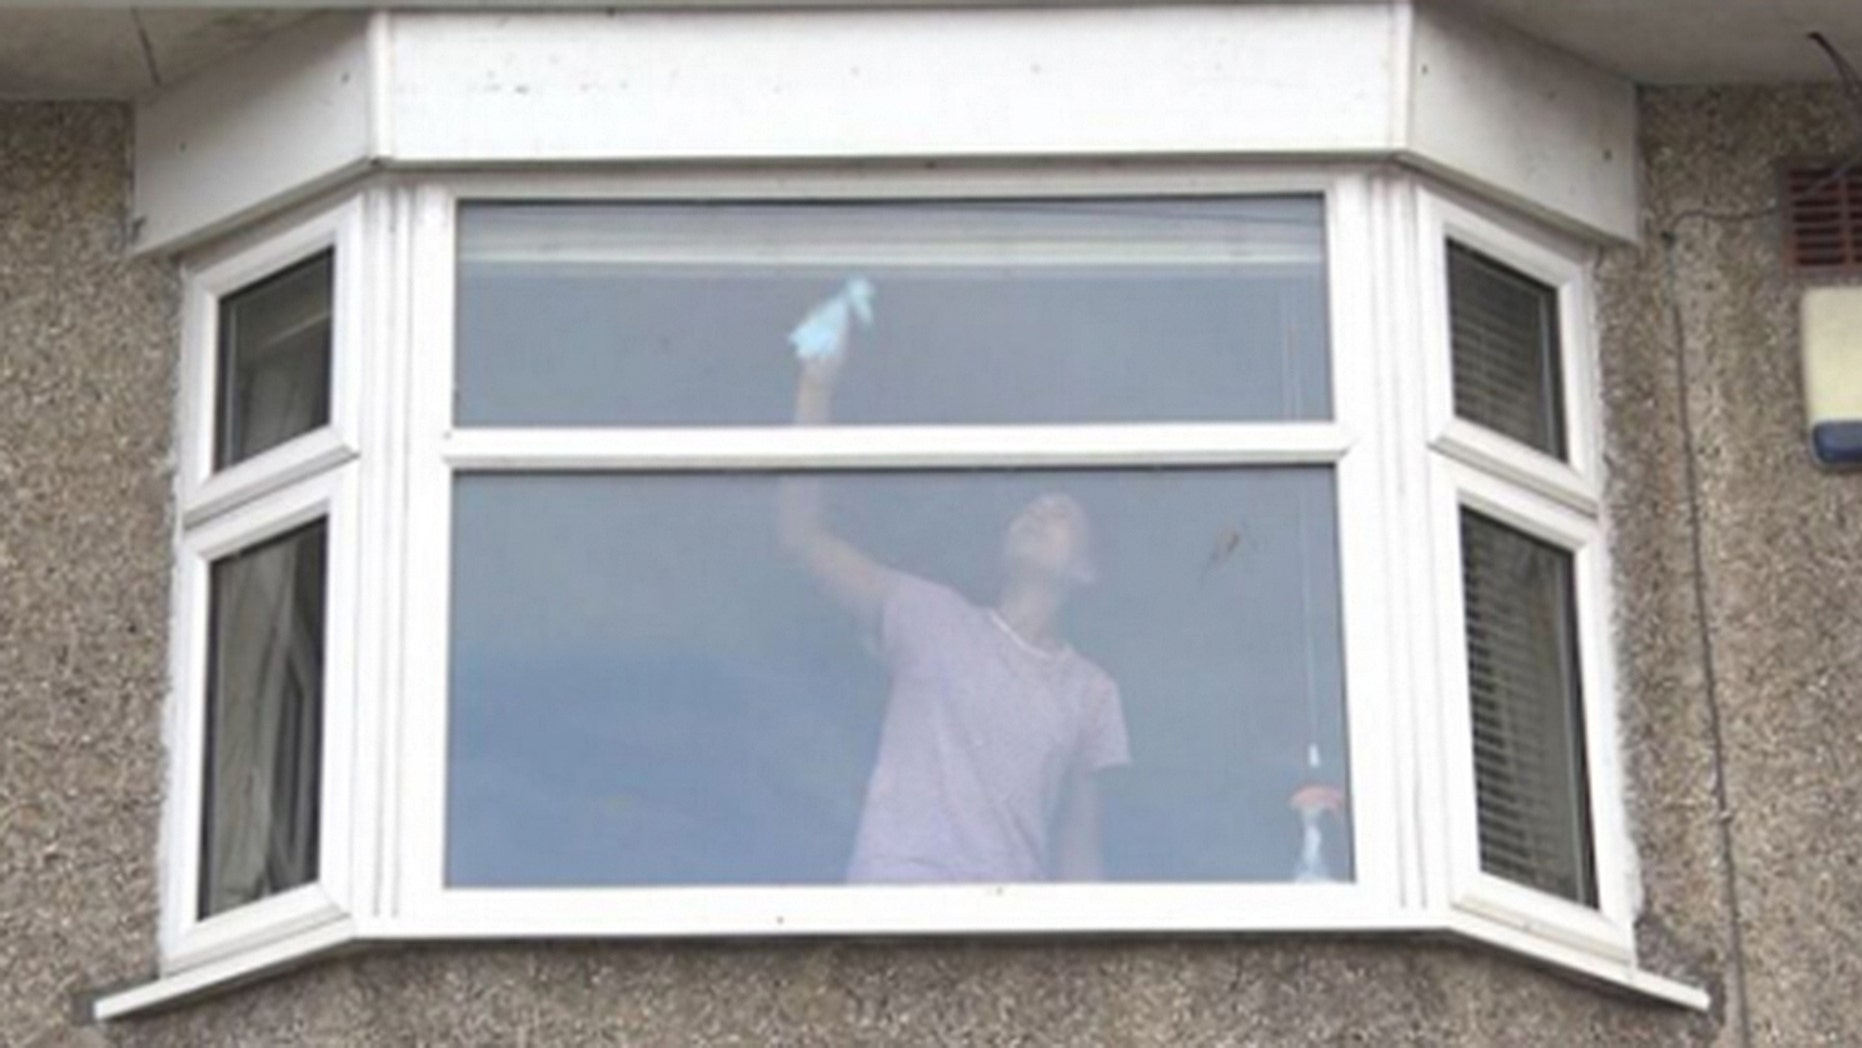 This seemingly innocuous photograph of a woman cleaning her windows has been shared with a shocking warning